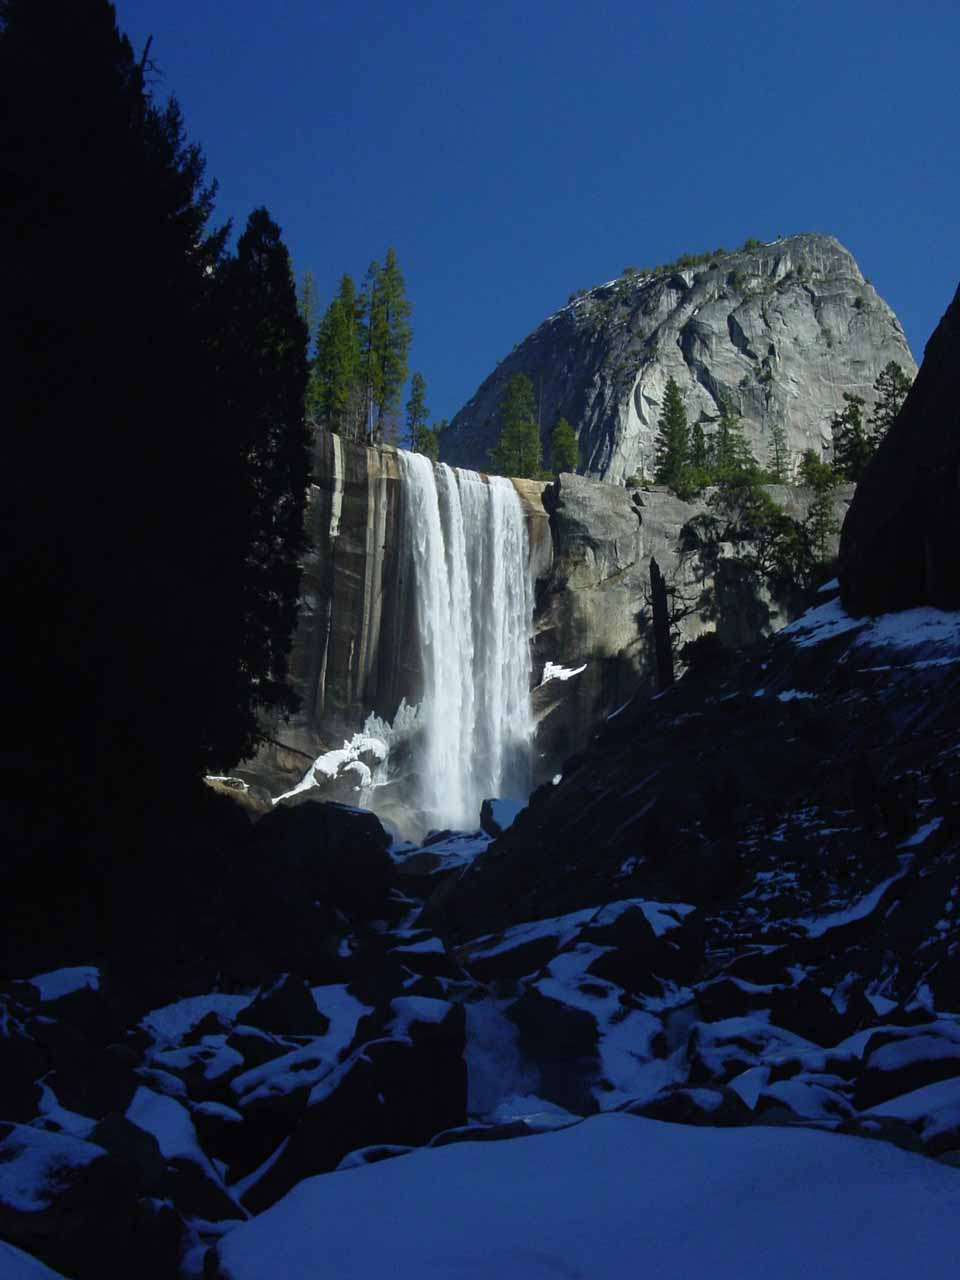 The view of Vernal Fall from near Lady Franklin Rock with lots of snow in February 2006